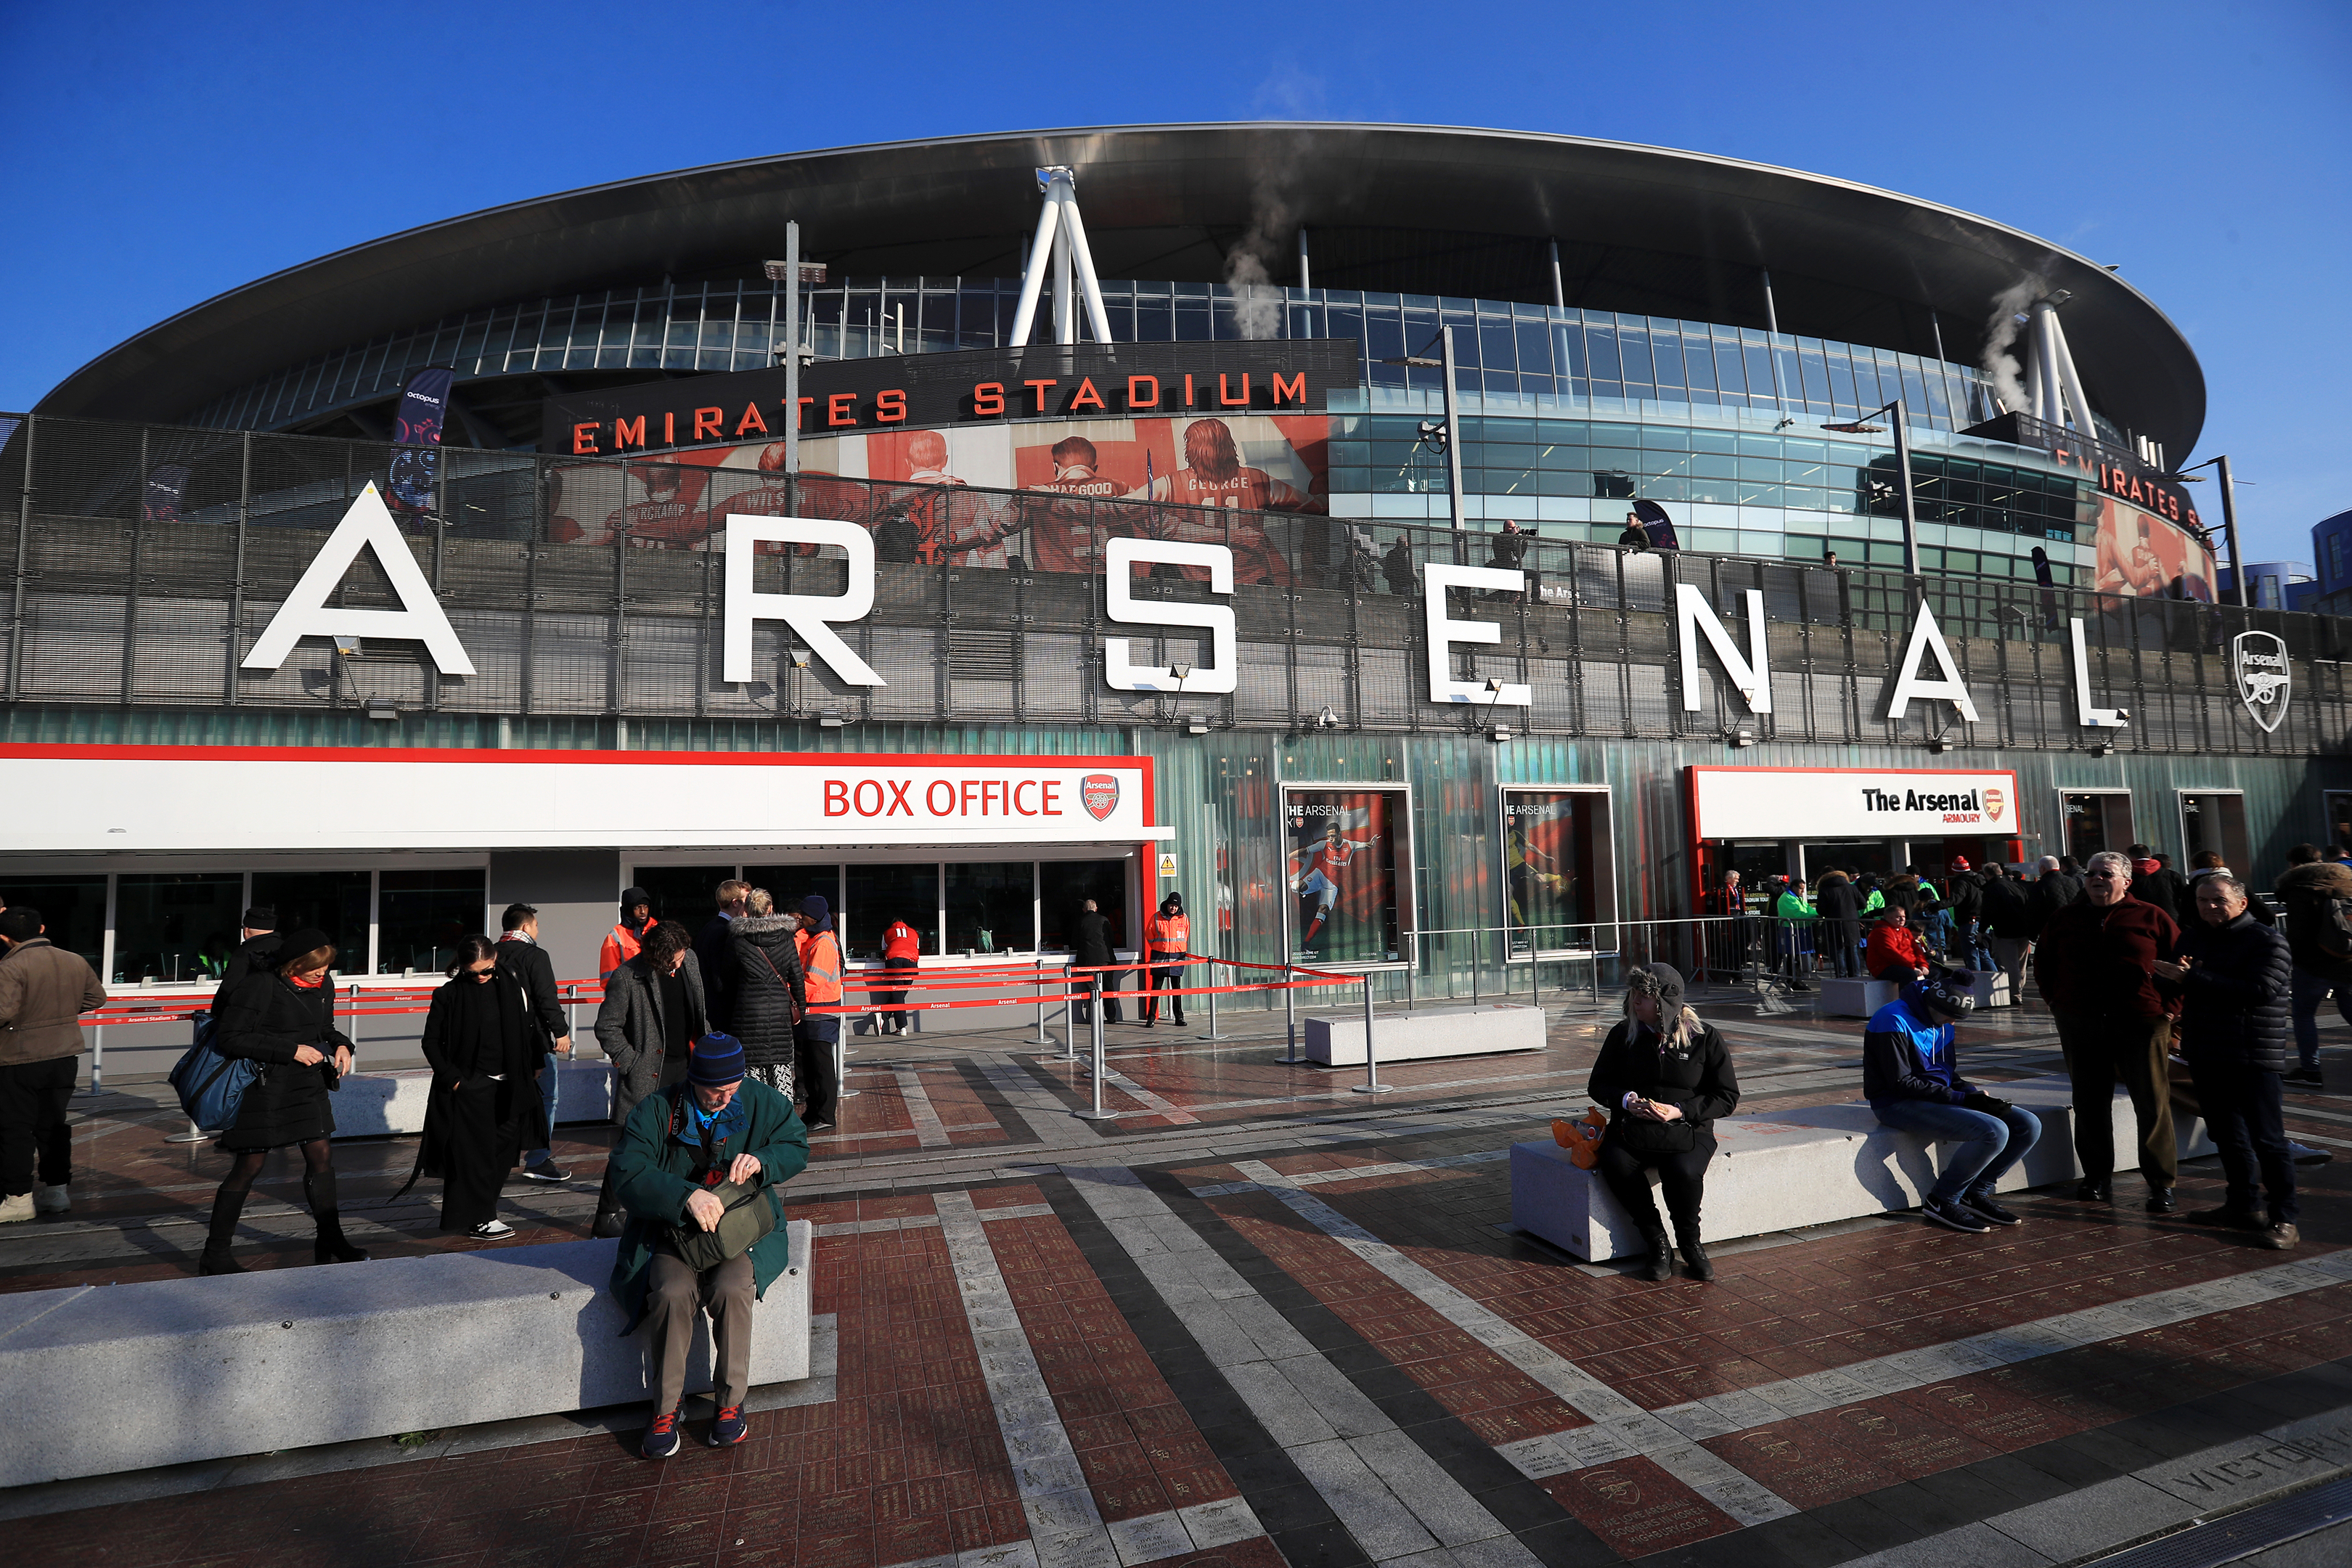 Arsenal Football club have vowed to go 100% renewable.